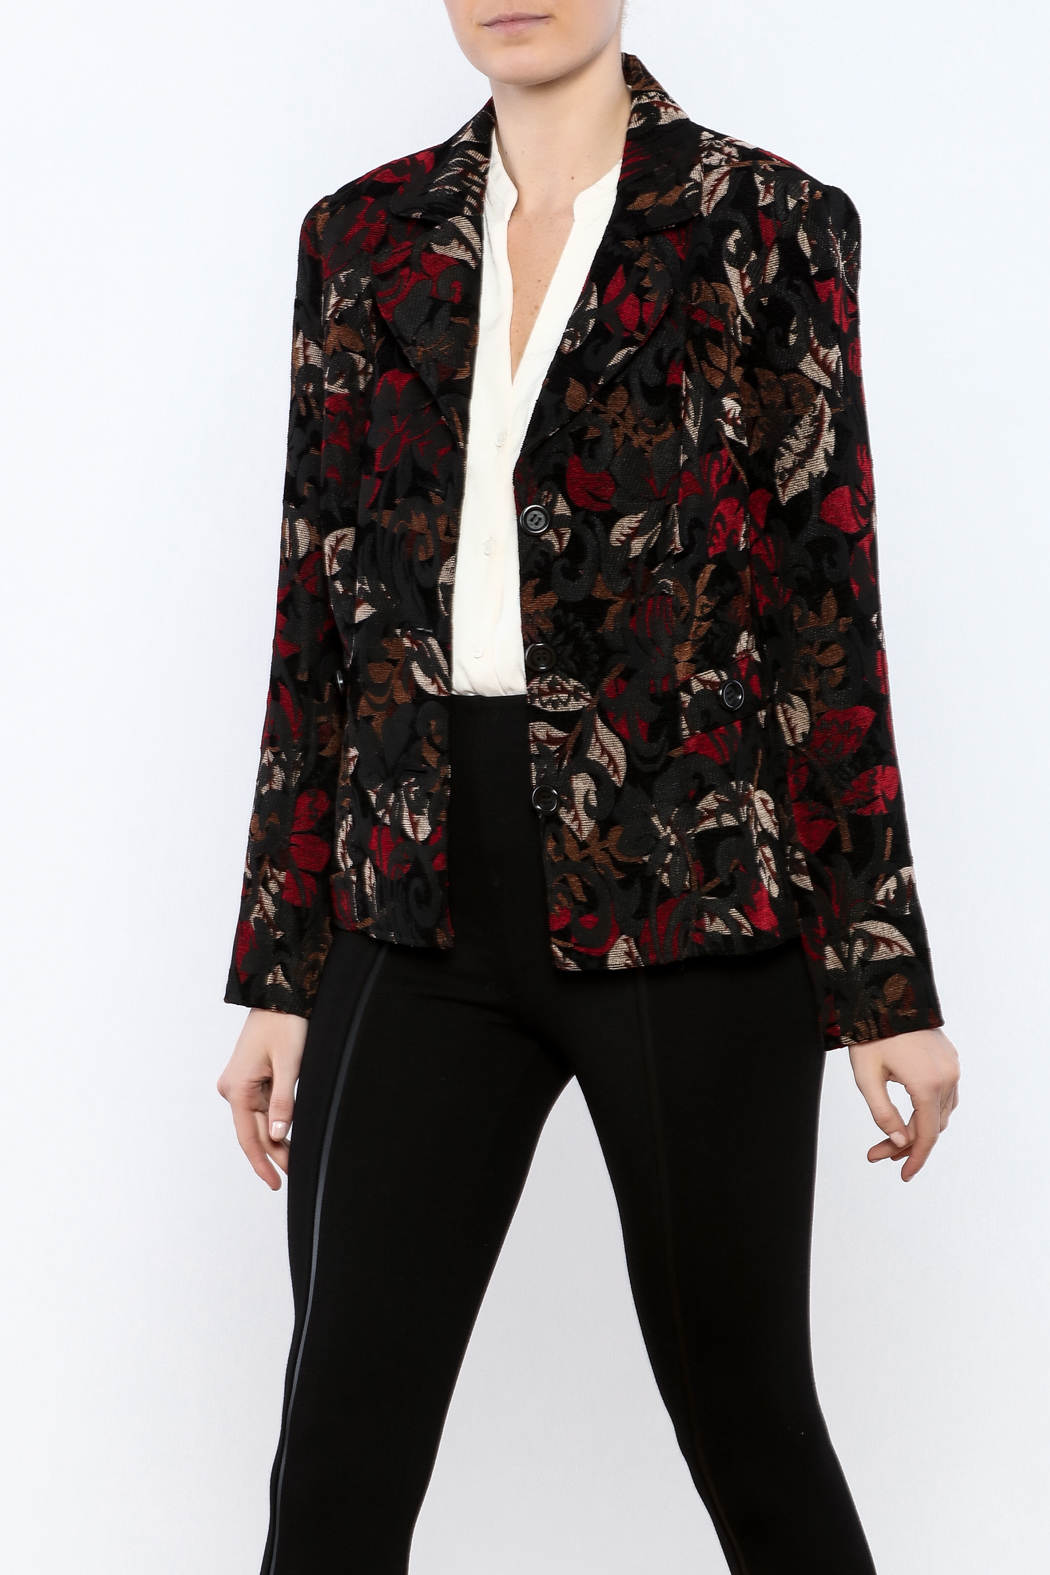 Lana Lee Tapestry Blazer From Cleveland By Jill S Boutique